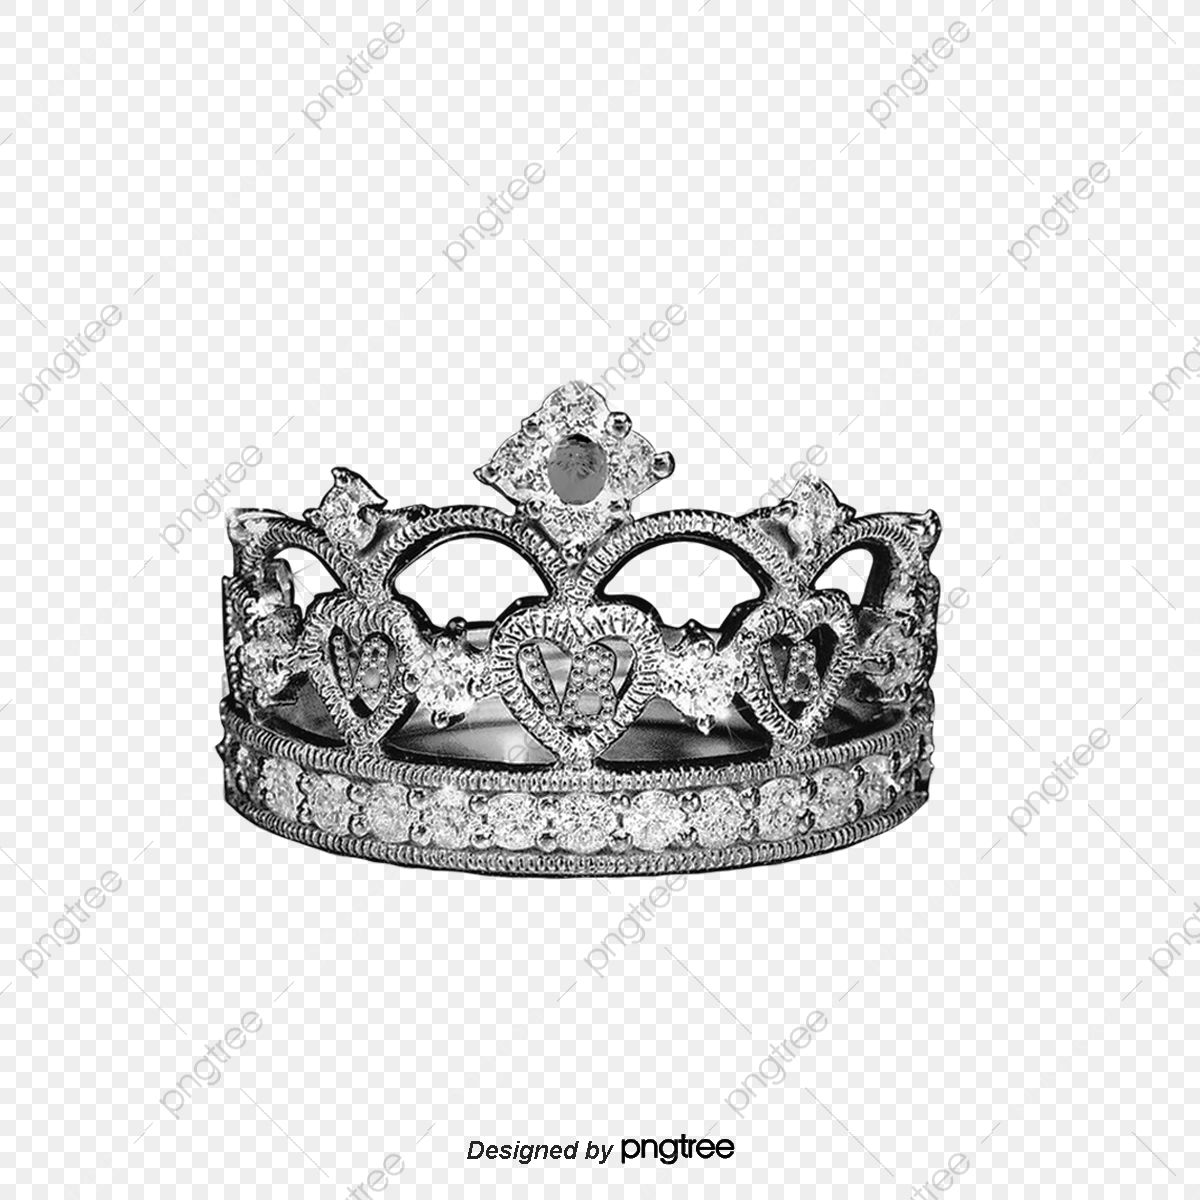 Gray And Black Metal Crown Crown Clipart Jewelry Accessories Imperial Crown Png Transparent Clipart Image And Psd File For Free Download Metal Crown Black Metal Clip Art